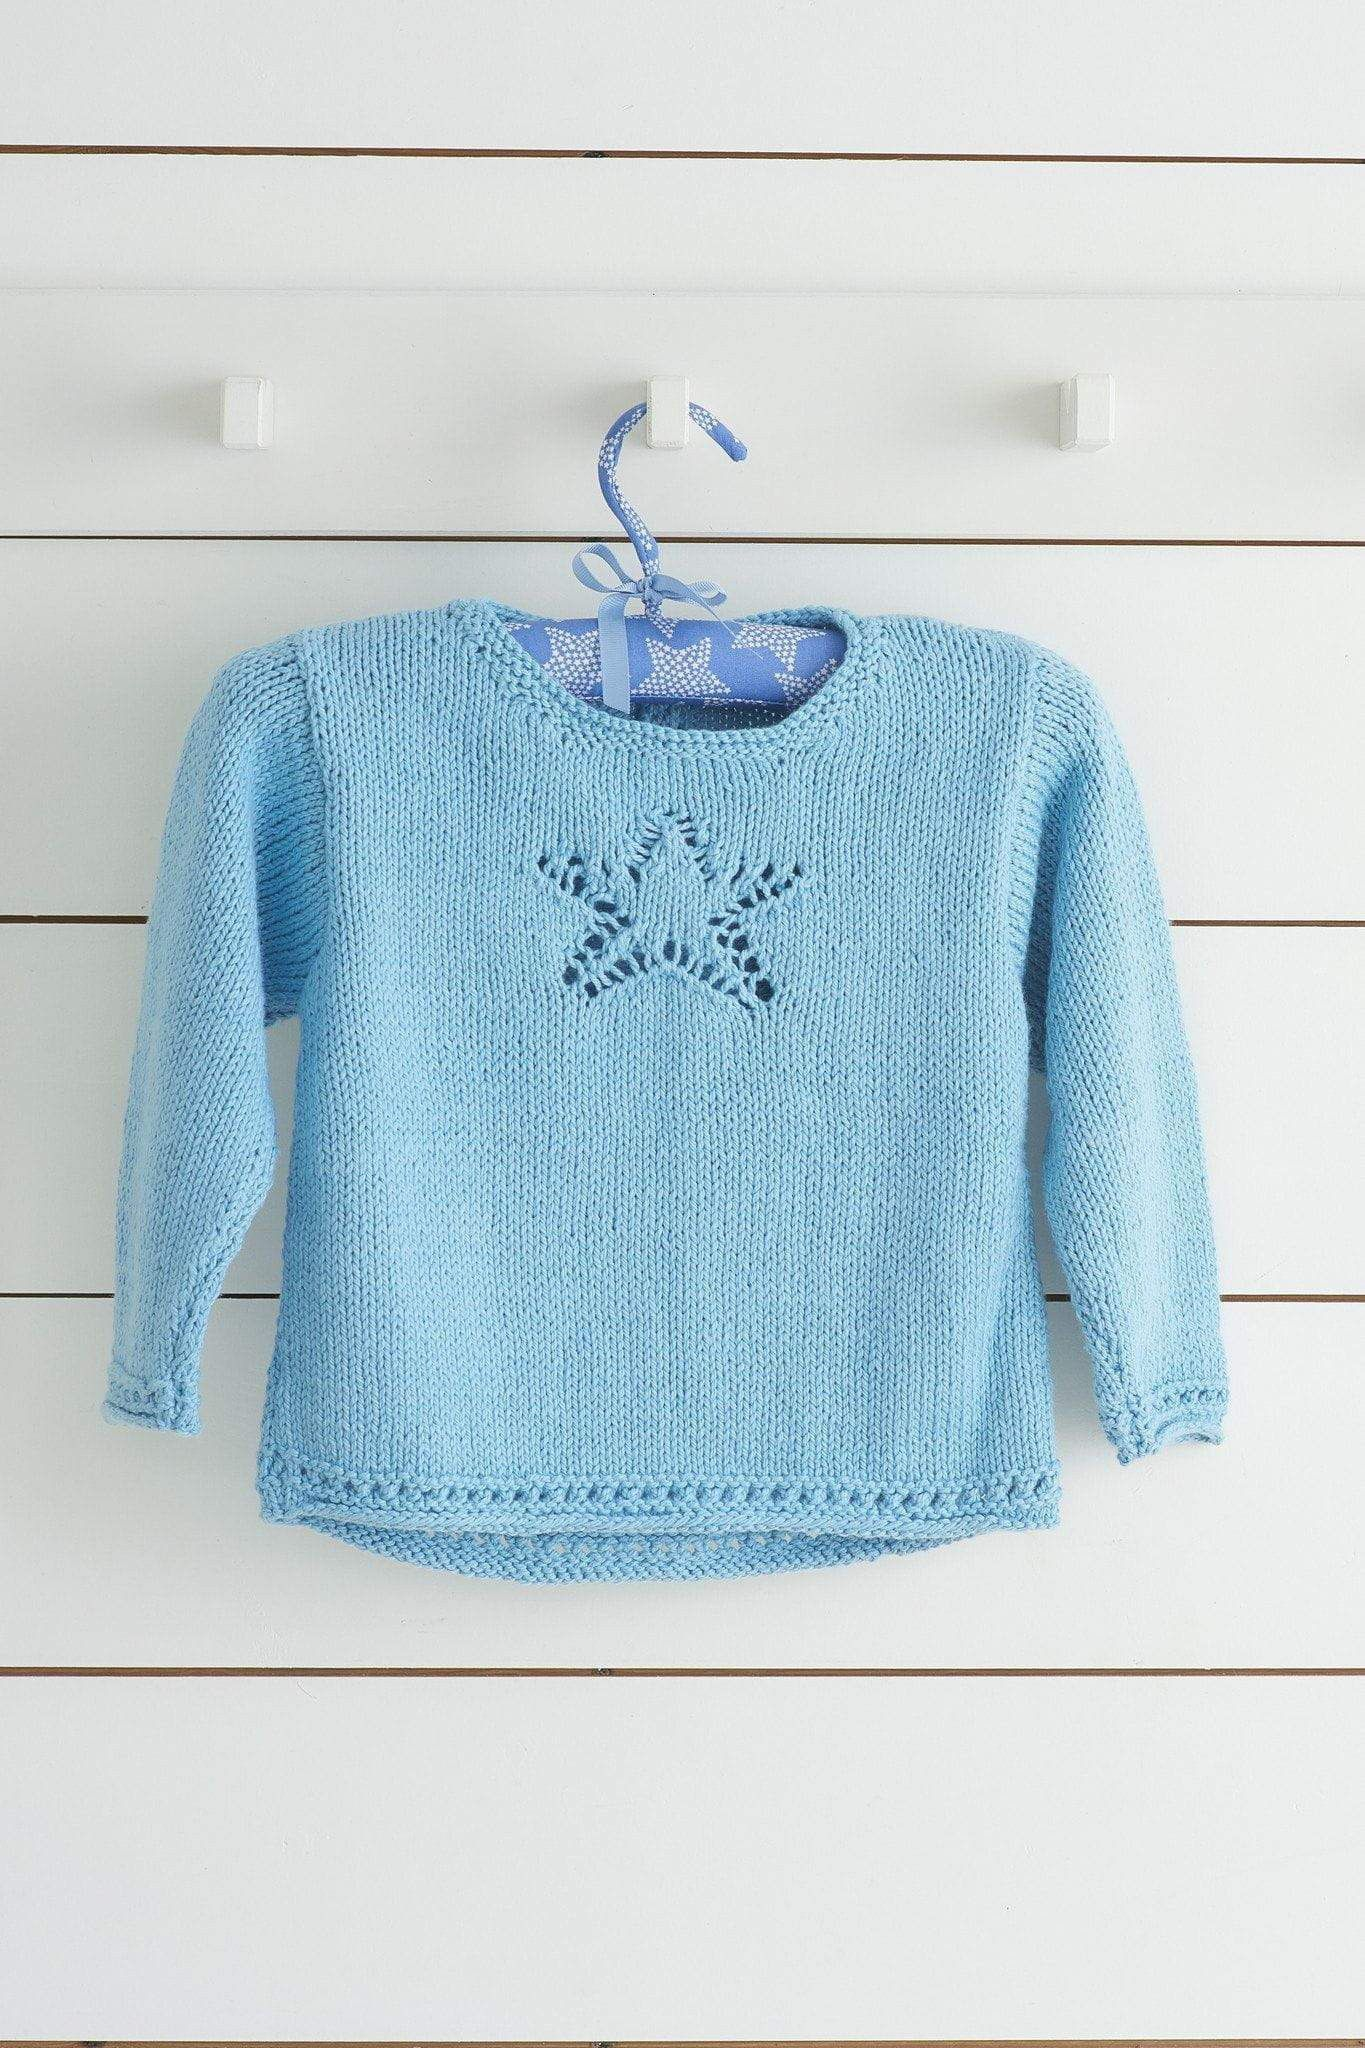 Lace Star Jumper Knitting Pattern   The Knitting Network